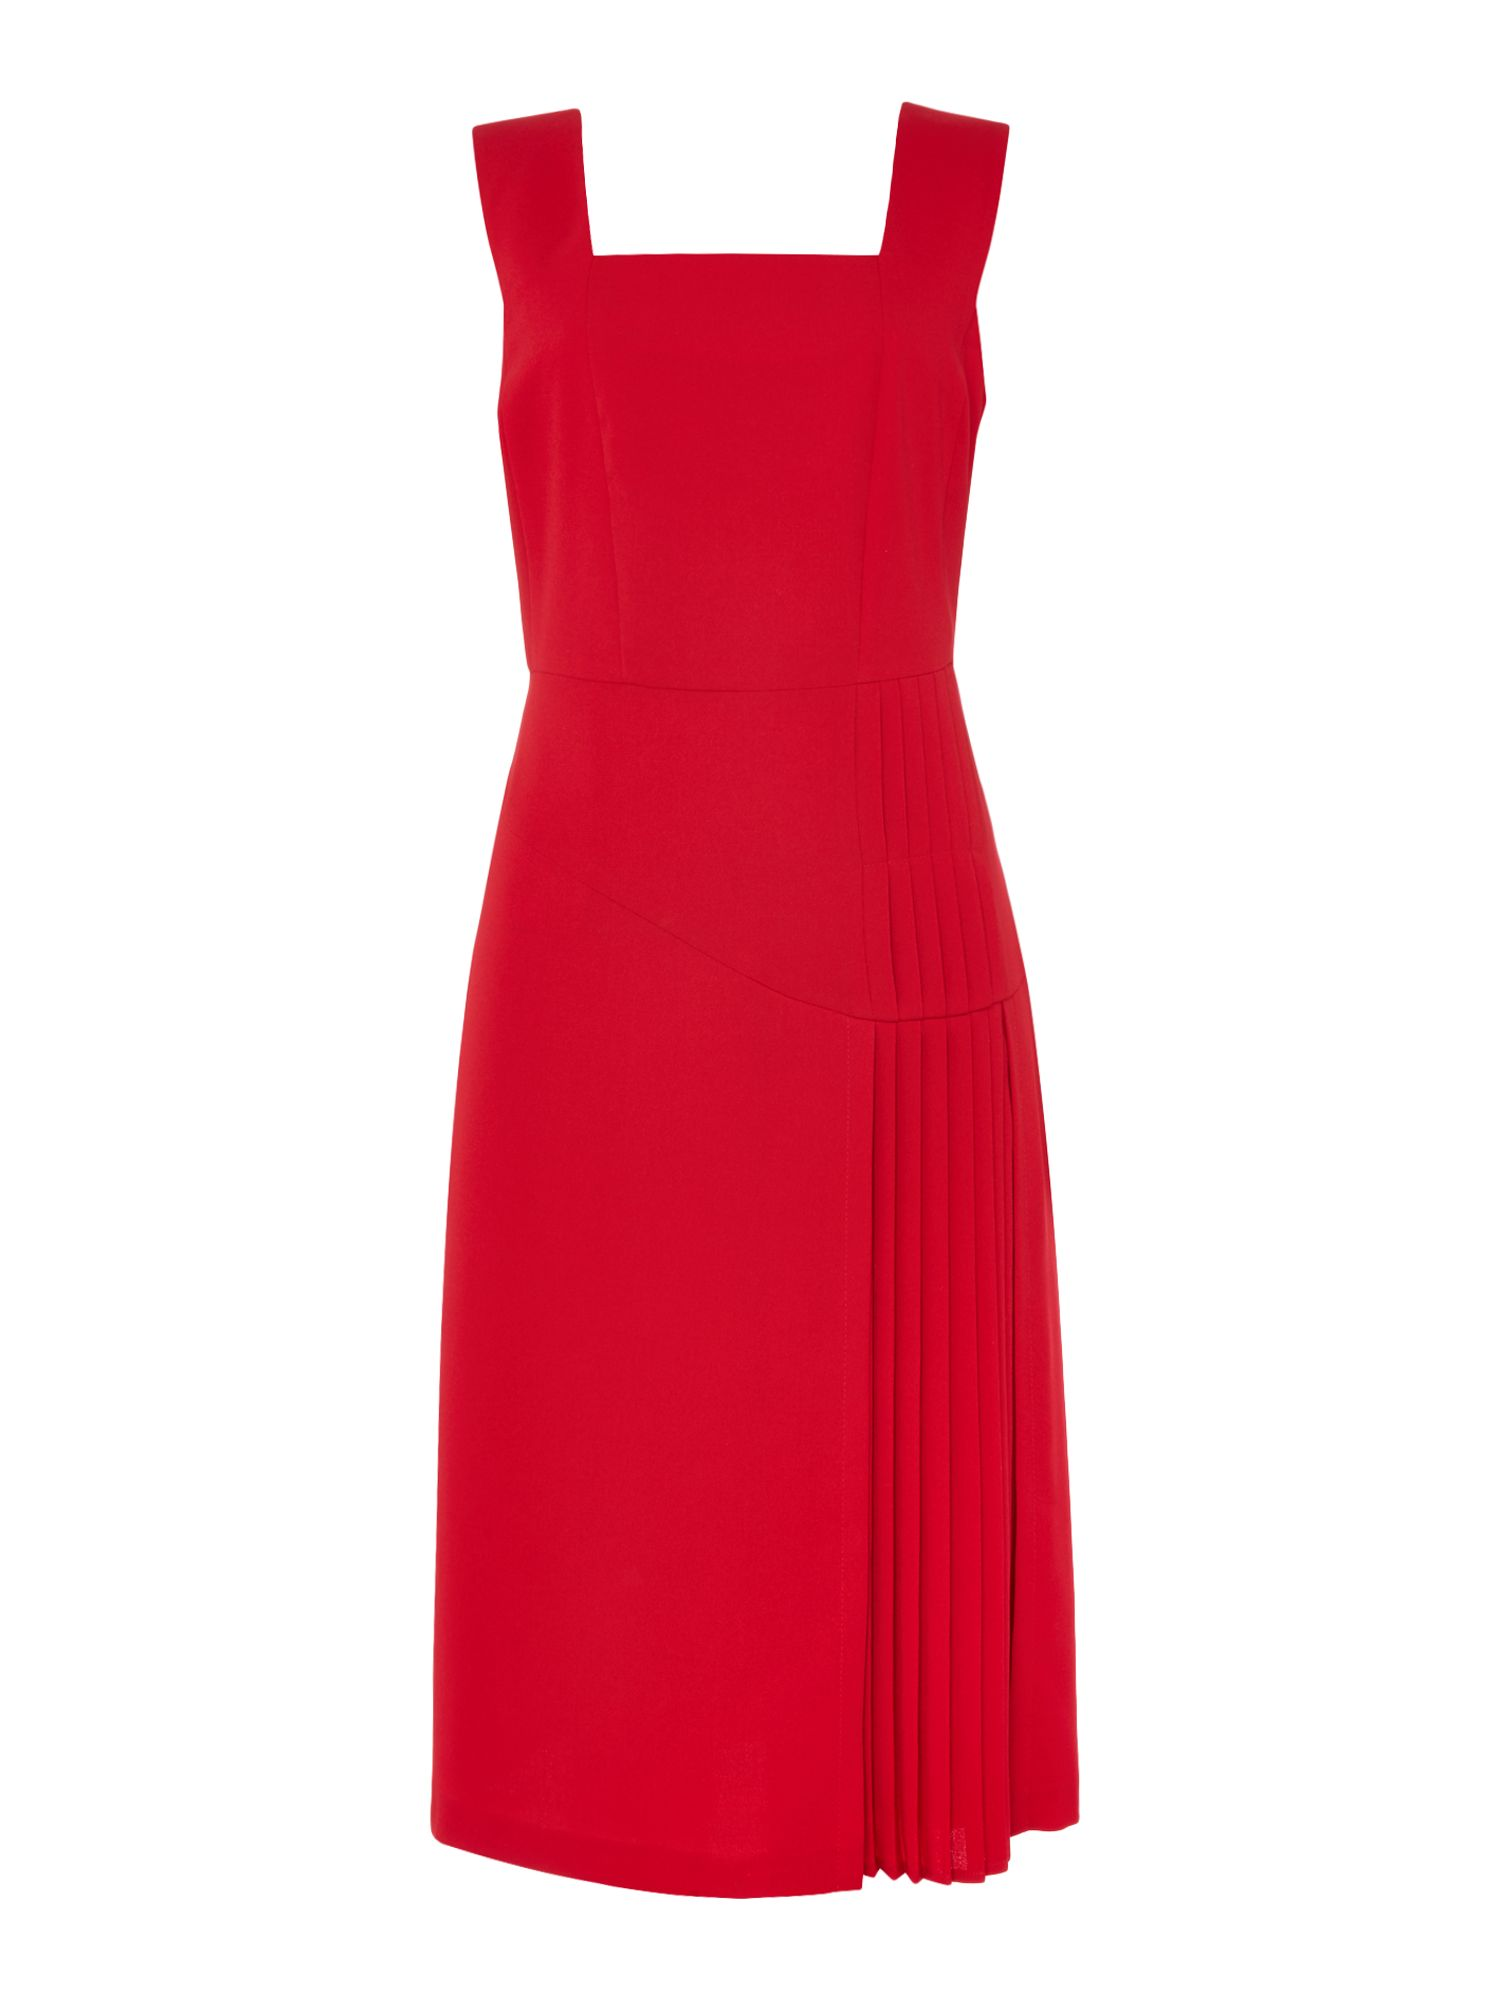 Linea Farah pleated dress, Red